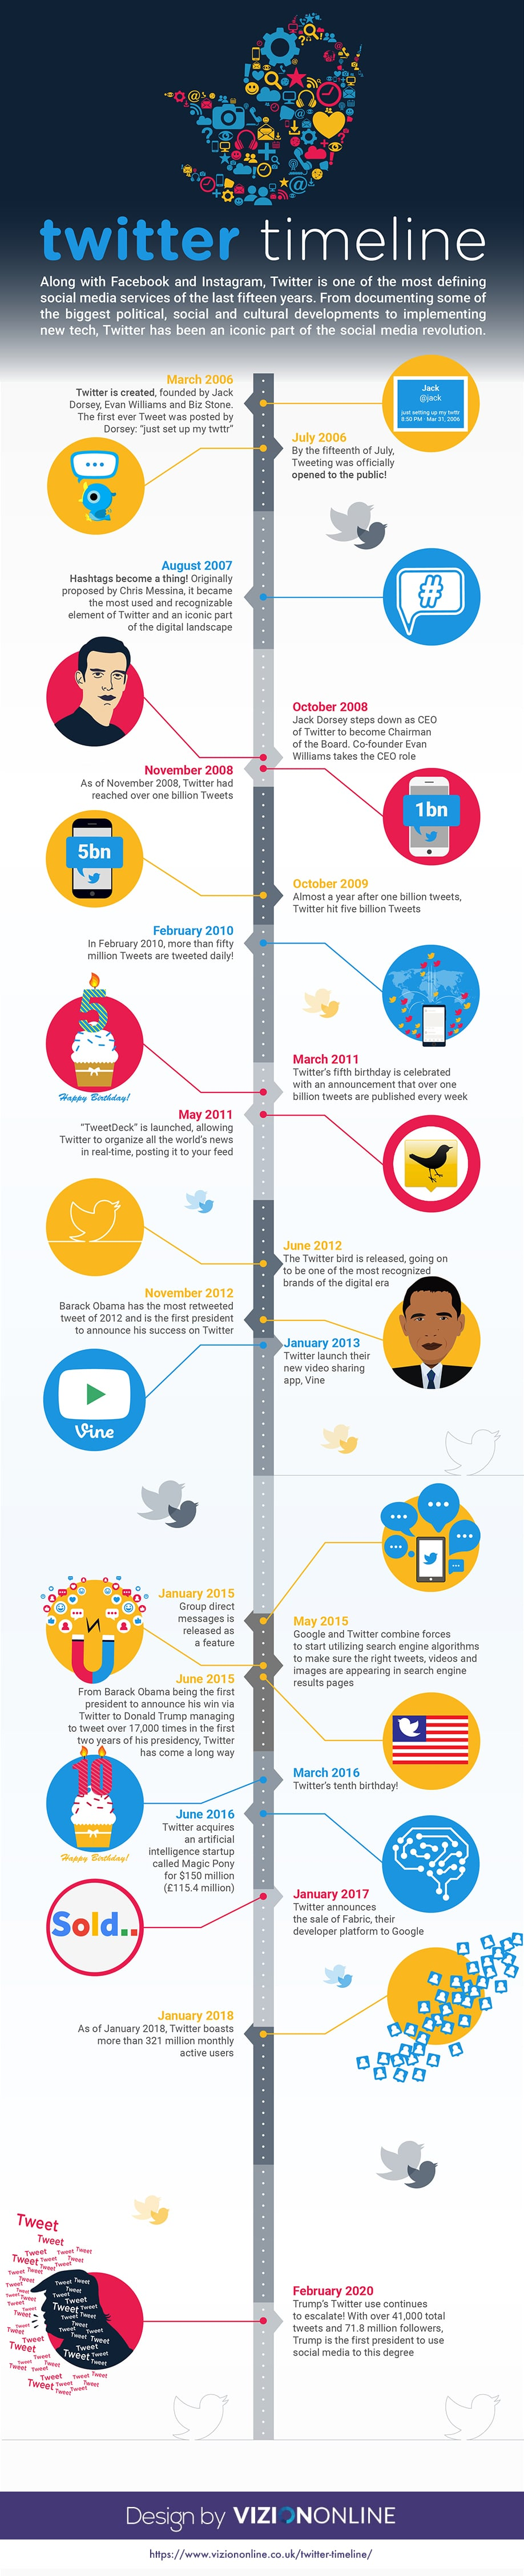 history of twitter (twitter timeline) infographic